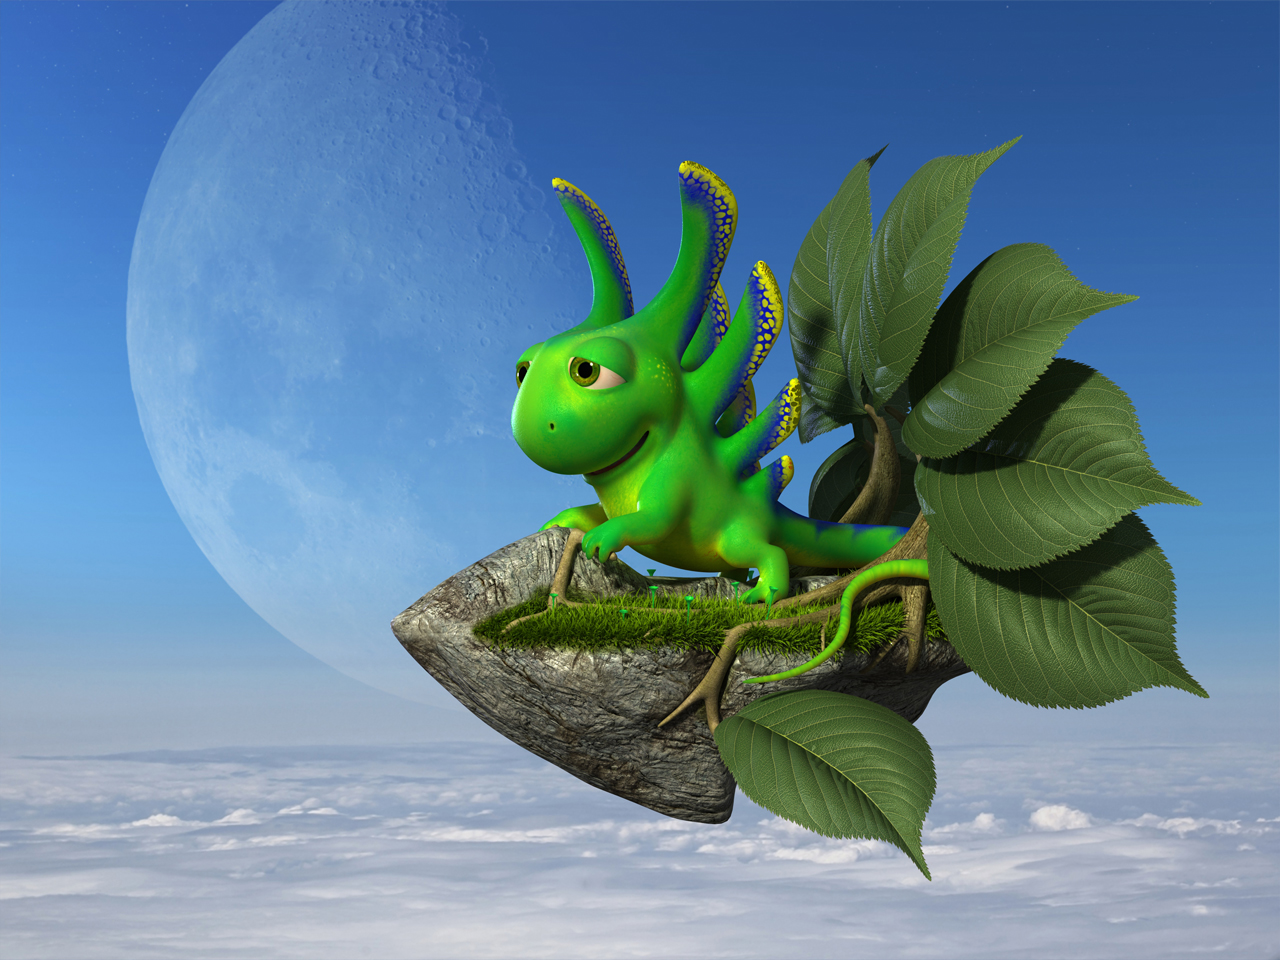 3D cartoon little green lizard flying on a magical bike made from stone with green leaves